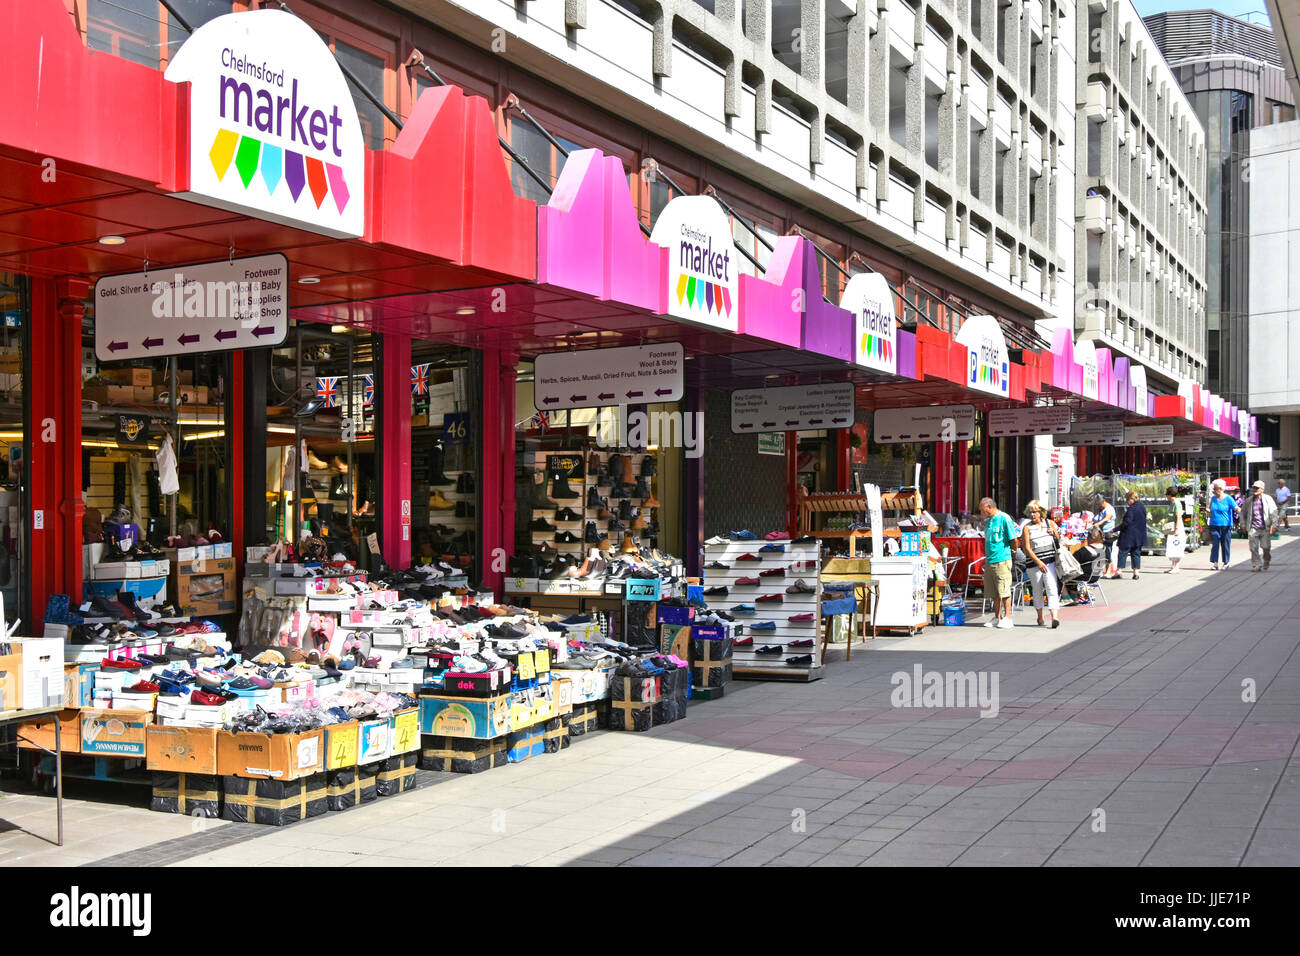 Chelmsford Essex town centre covered market with goods on display along pedestrianised pavement below multi storey - Stock Image